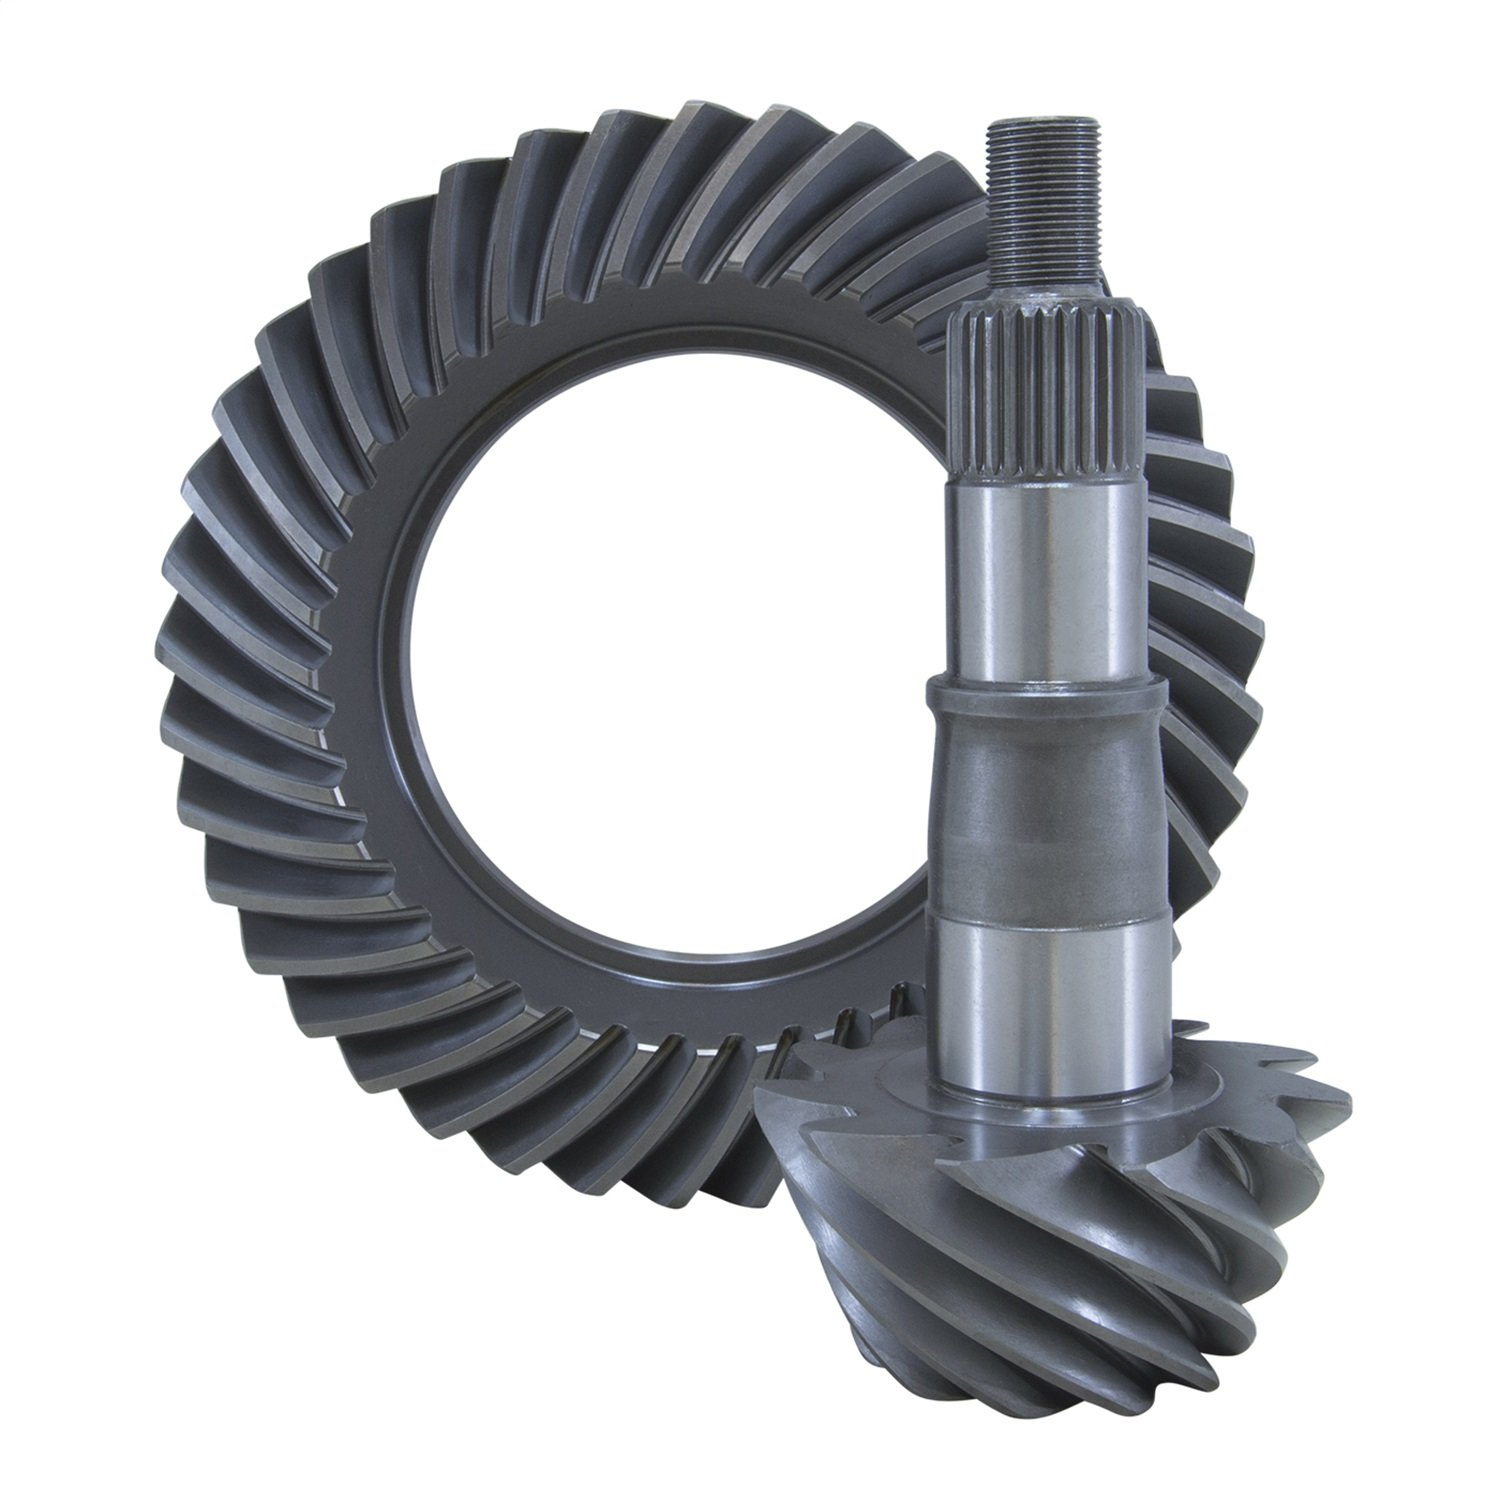 USA Standard Gear (ZG F8.8-373) Ring & Pinion Gear Set for Ford 8.8 Differential